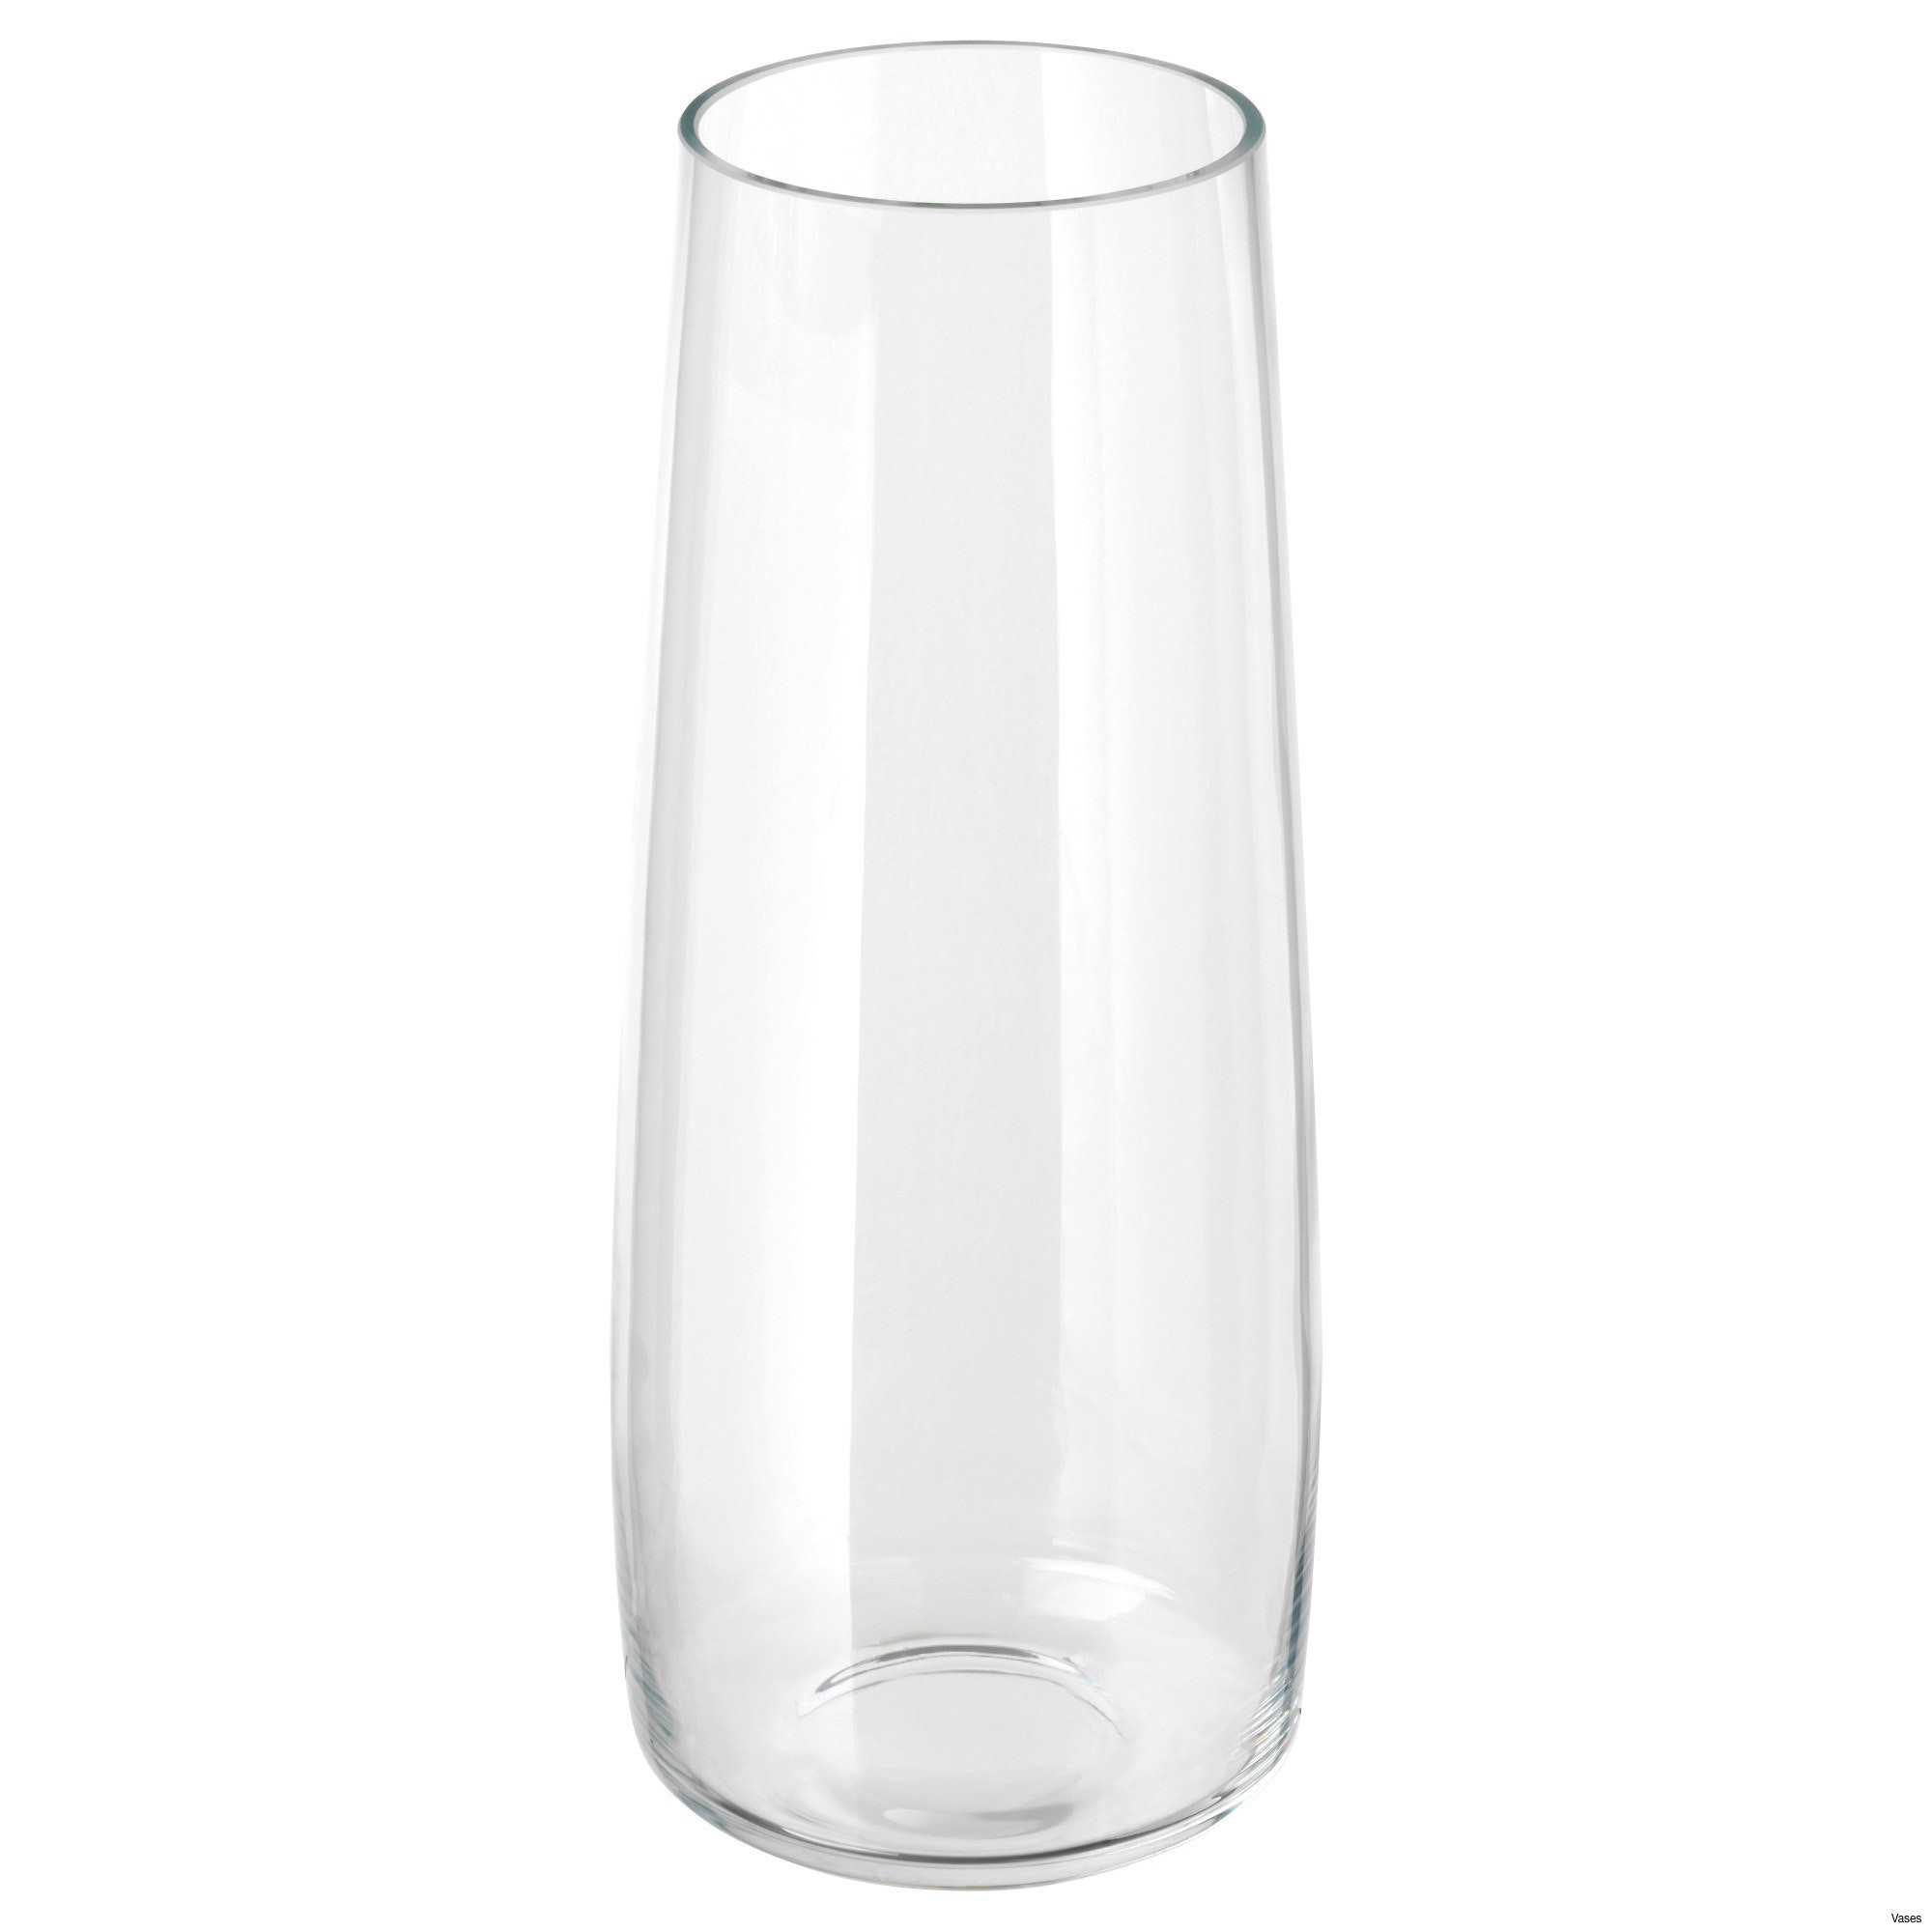 dollar cylinder vases of large clear glass vase pics clear glass planters fresh clear glass regarding clear glass planters fresh clear glass vases